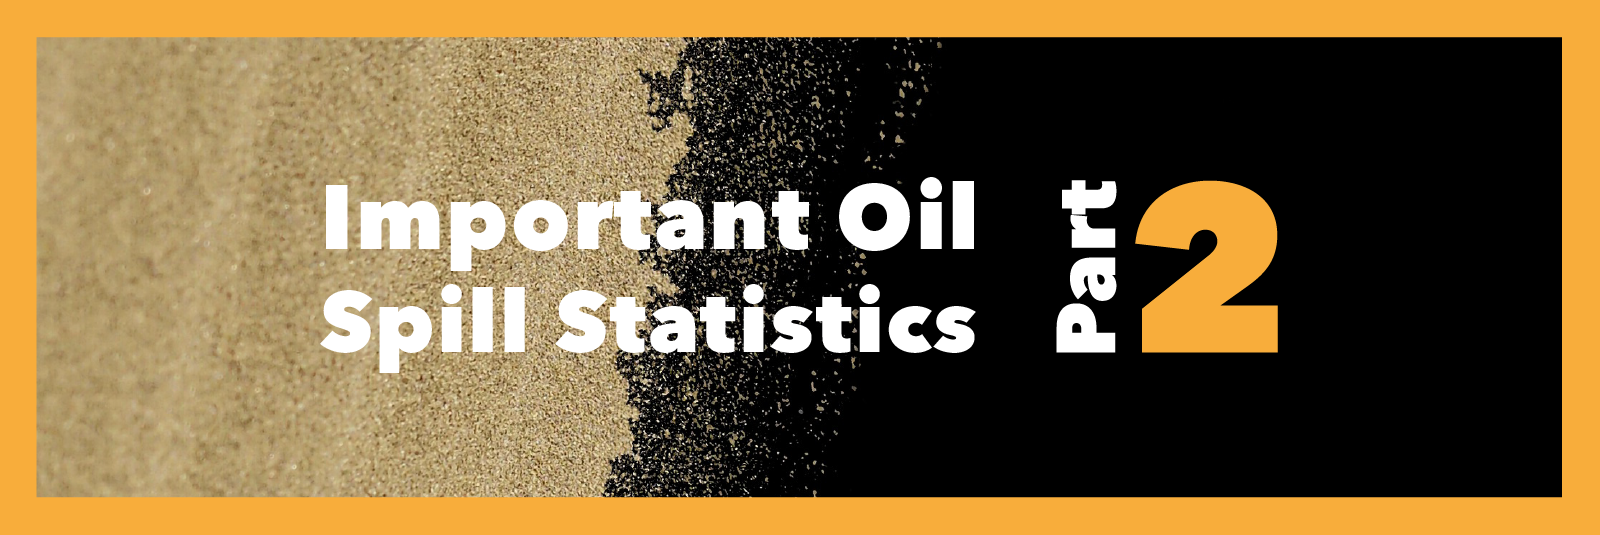 SHPI_Post_OilSpillStatistics2_Website